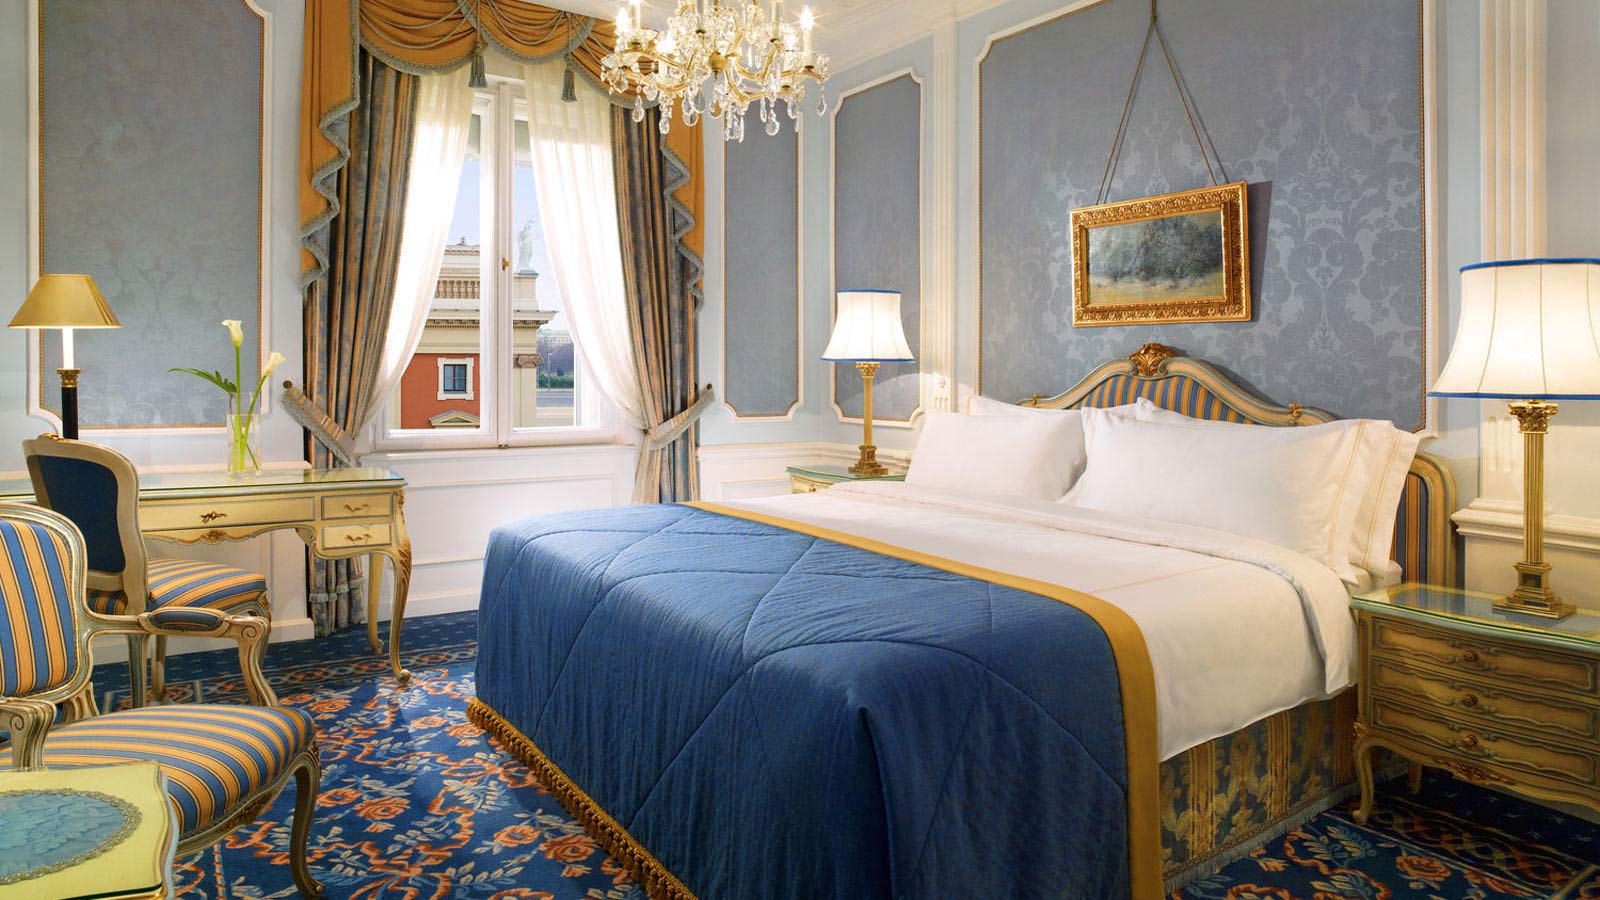 Hotel Imperial Vienna - Classic Room